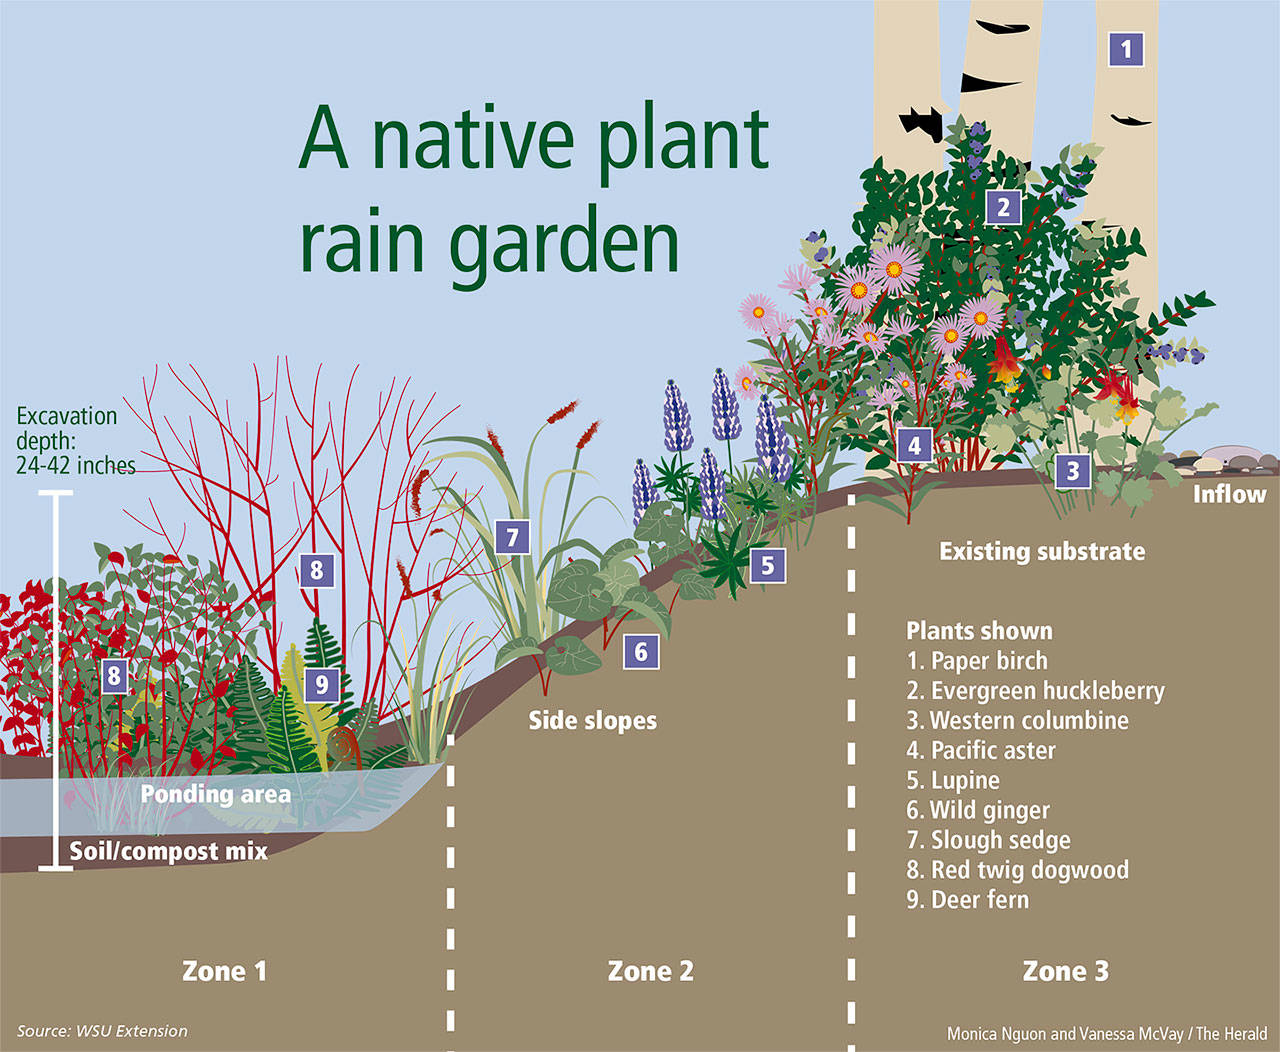 Rain Garden | Wiring Diagram on rain gutter downspout design, rain art drawings, rain water design, rain construction, french drain design, rain illustration, rain harvesting system design, gasification design, rain roses, rain gardens 101, dry well design, bioswale design, rain barrels,